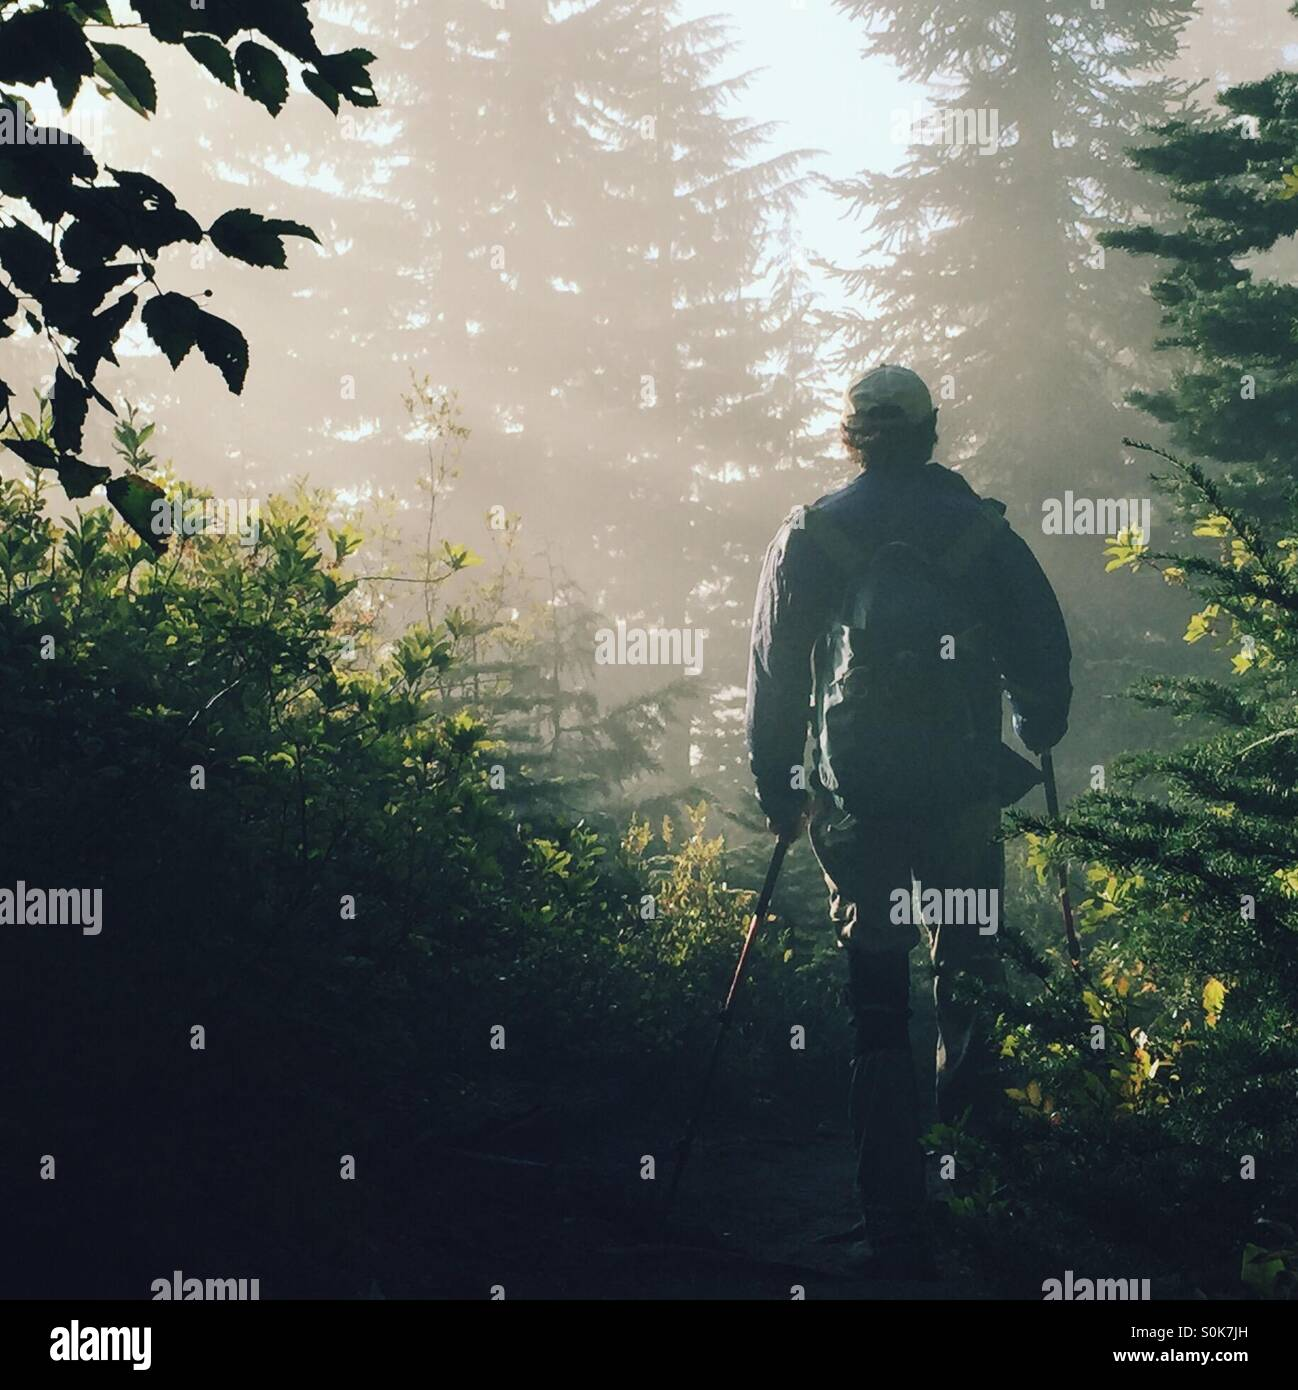 Silhouette of a hiker in the forest - Stock Image